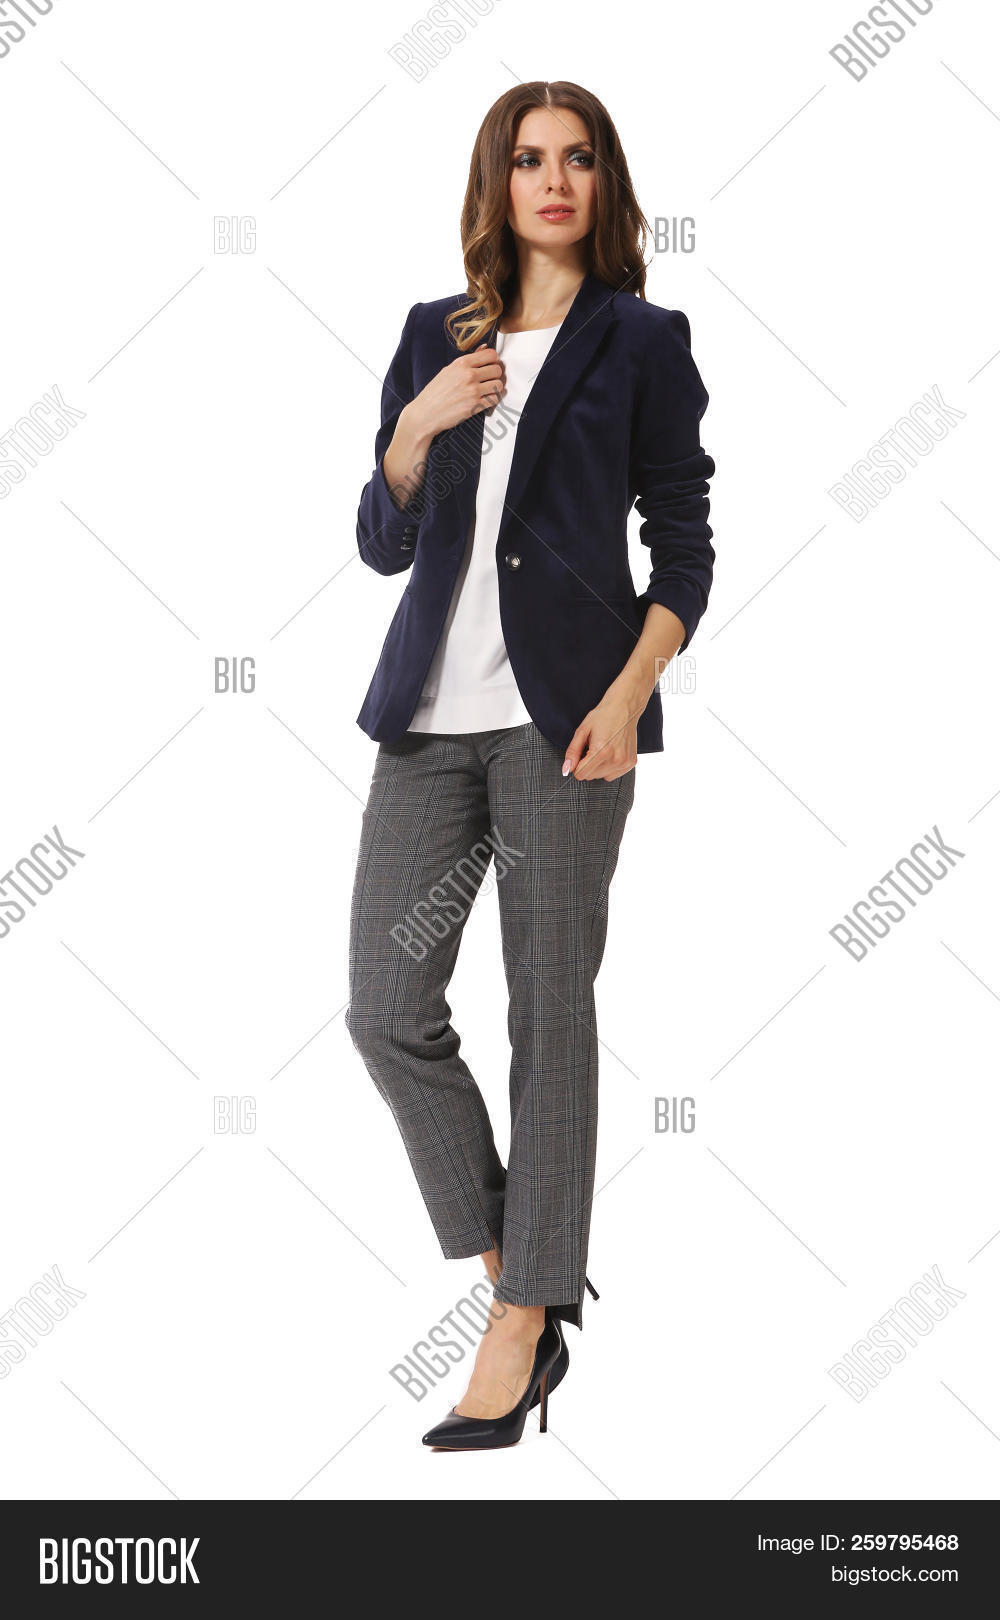 b67006f58a3 Business Woman Executive Posing In Designer Formal Casual Jacket And  Trousers Sneakers Shoes